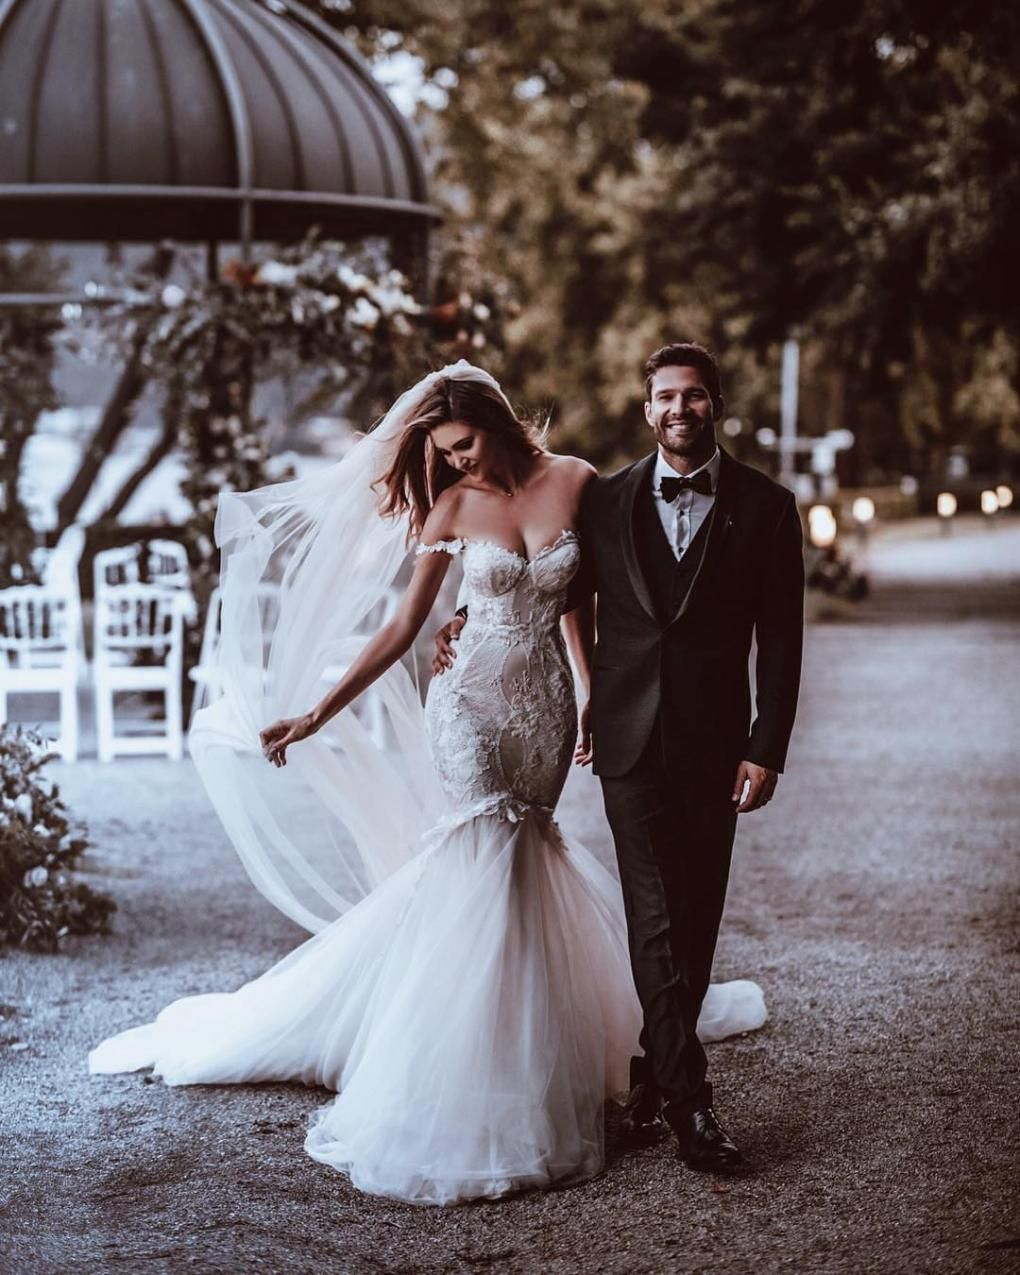 de07f8fcf27a From a mermaid wedding dress to the perfect location, this is everything  you need in